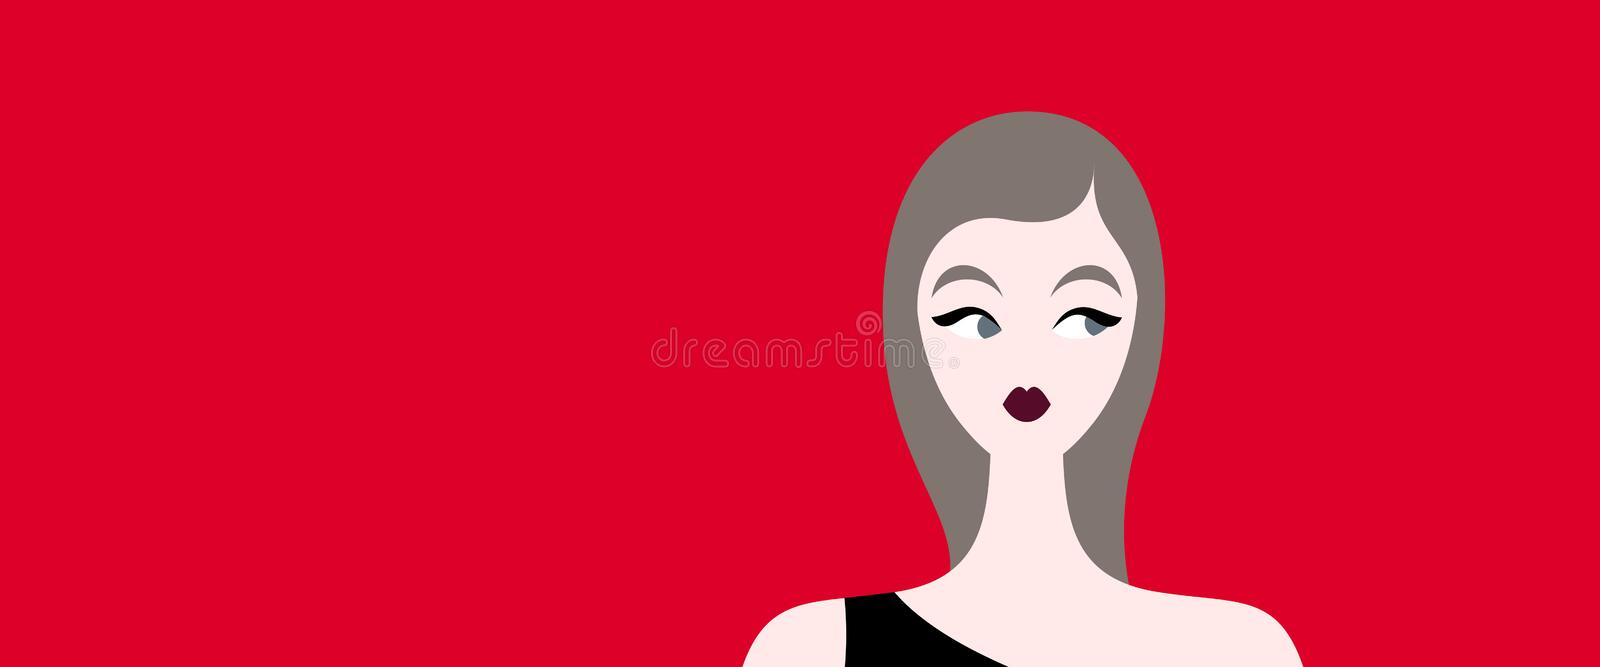 Brown haired woman vector illustration